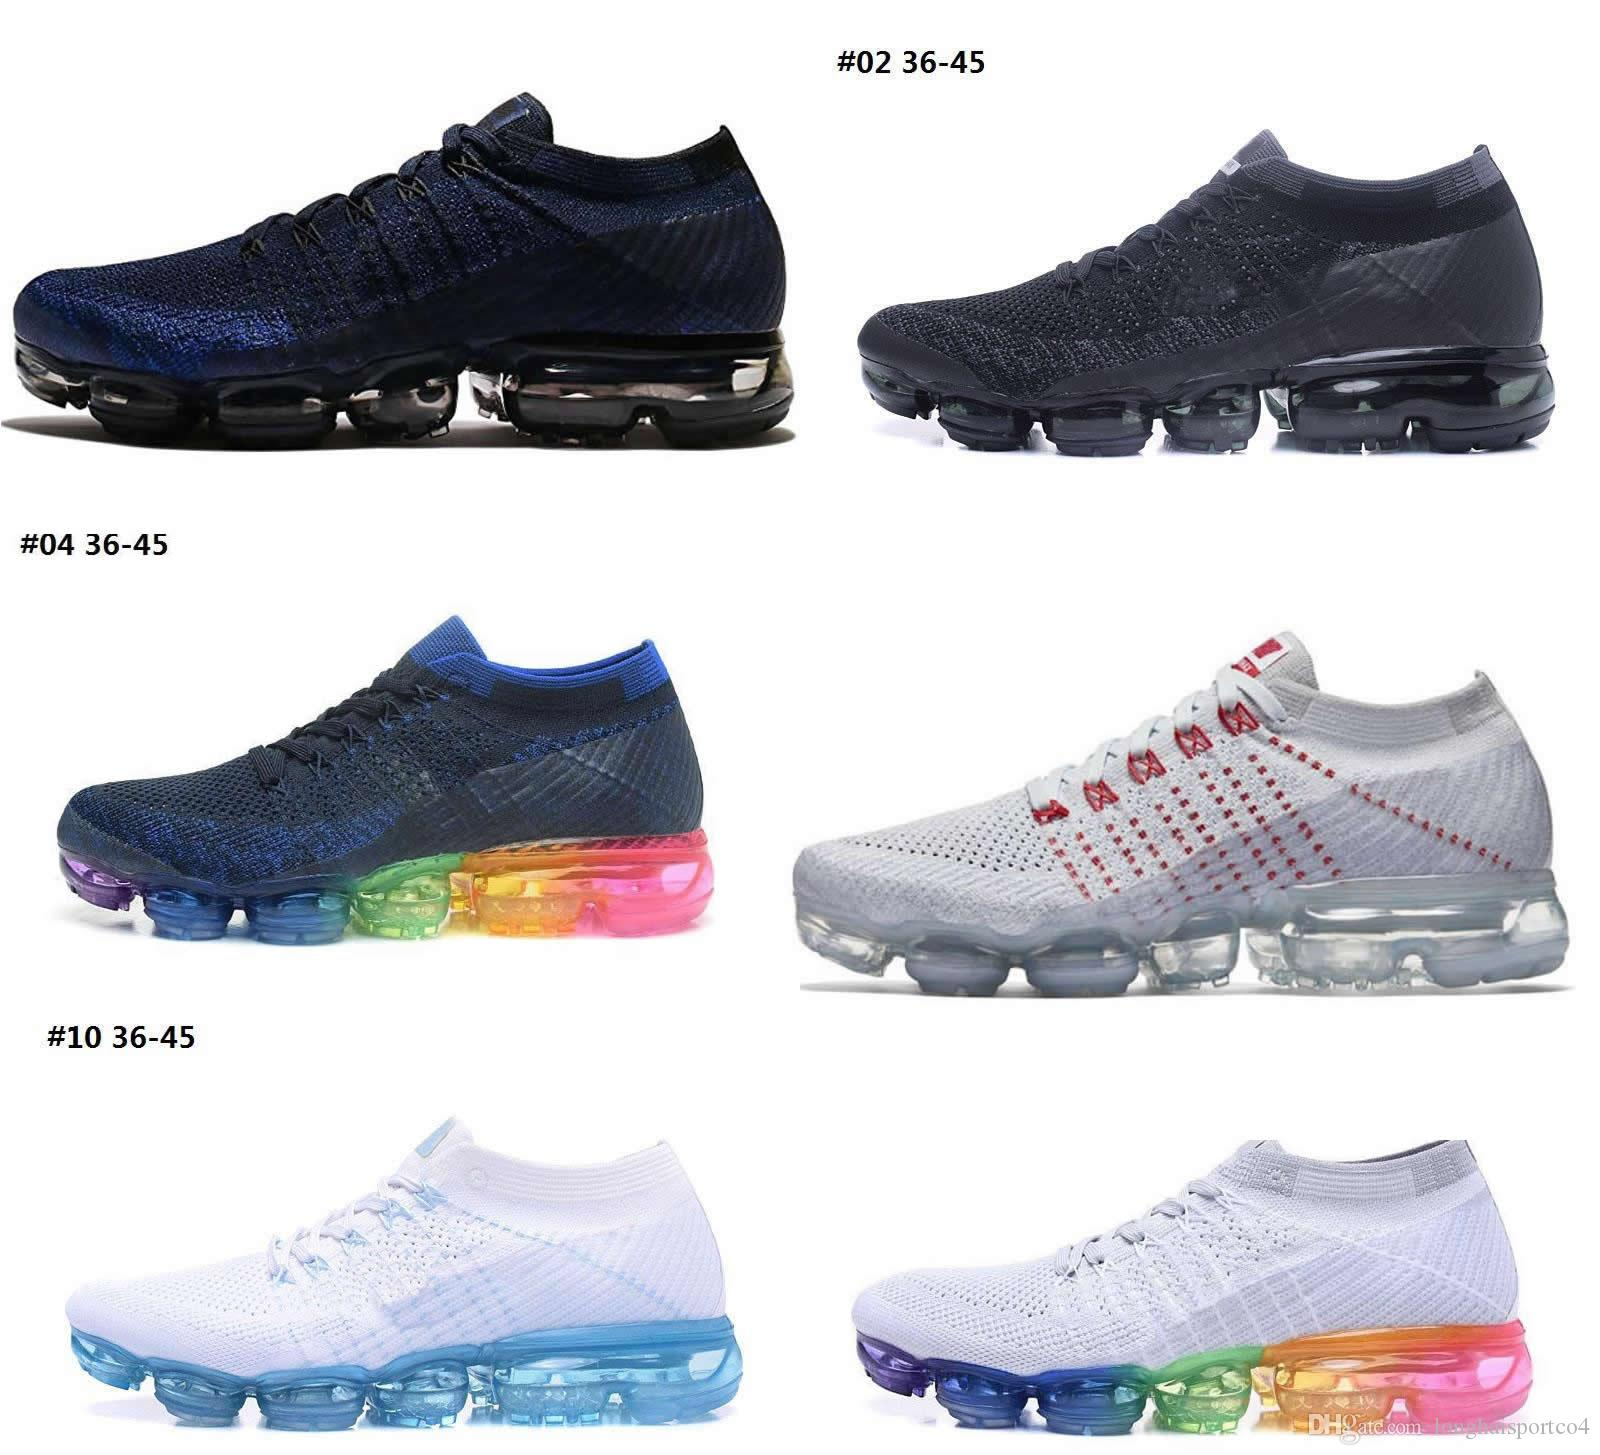 2018 High Qaulity Fashion Vapormaxs Mesh Breathable Running Shoes Men Women Sport Shoes Sneakers For Men popular online discount excellent cheap Inexpensive online Shop 0q8p6Br